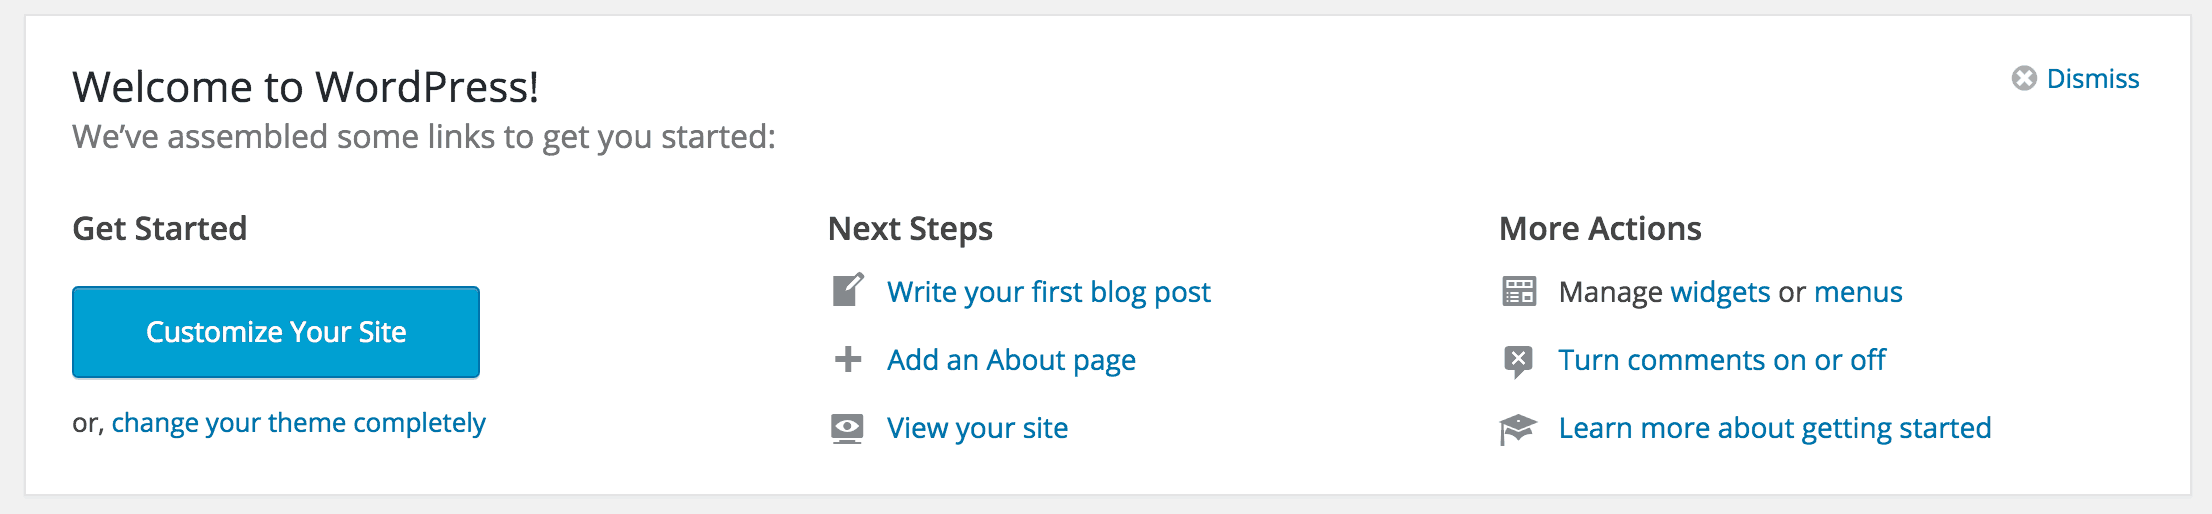 getting started blogging